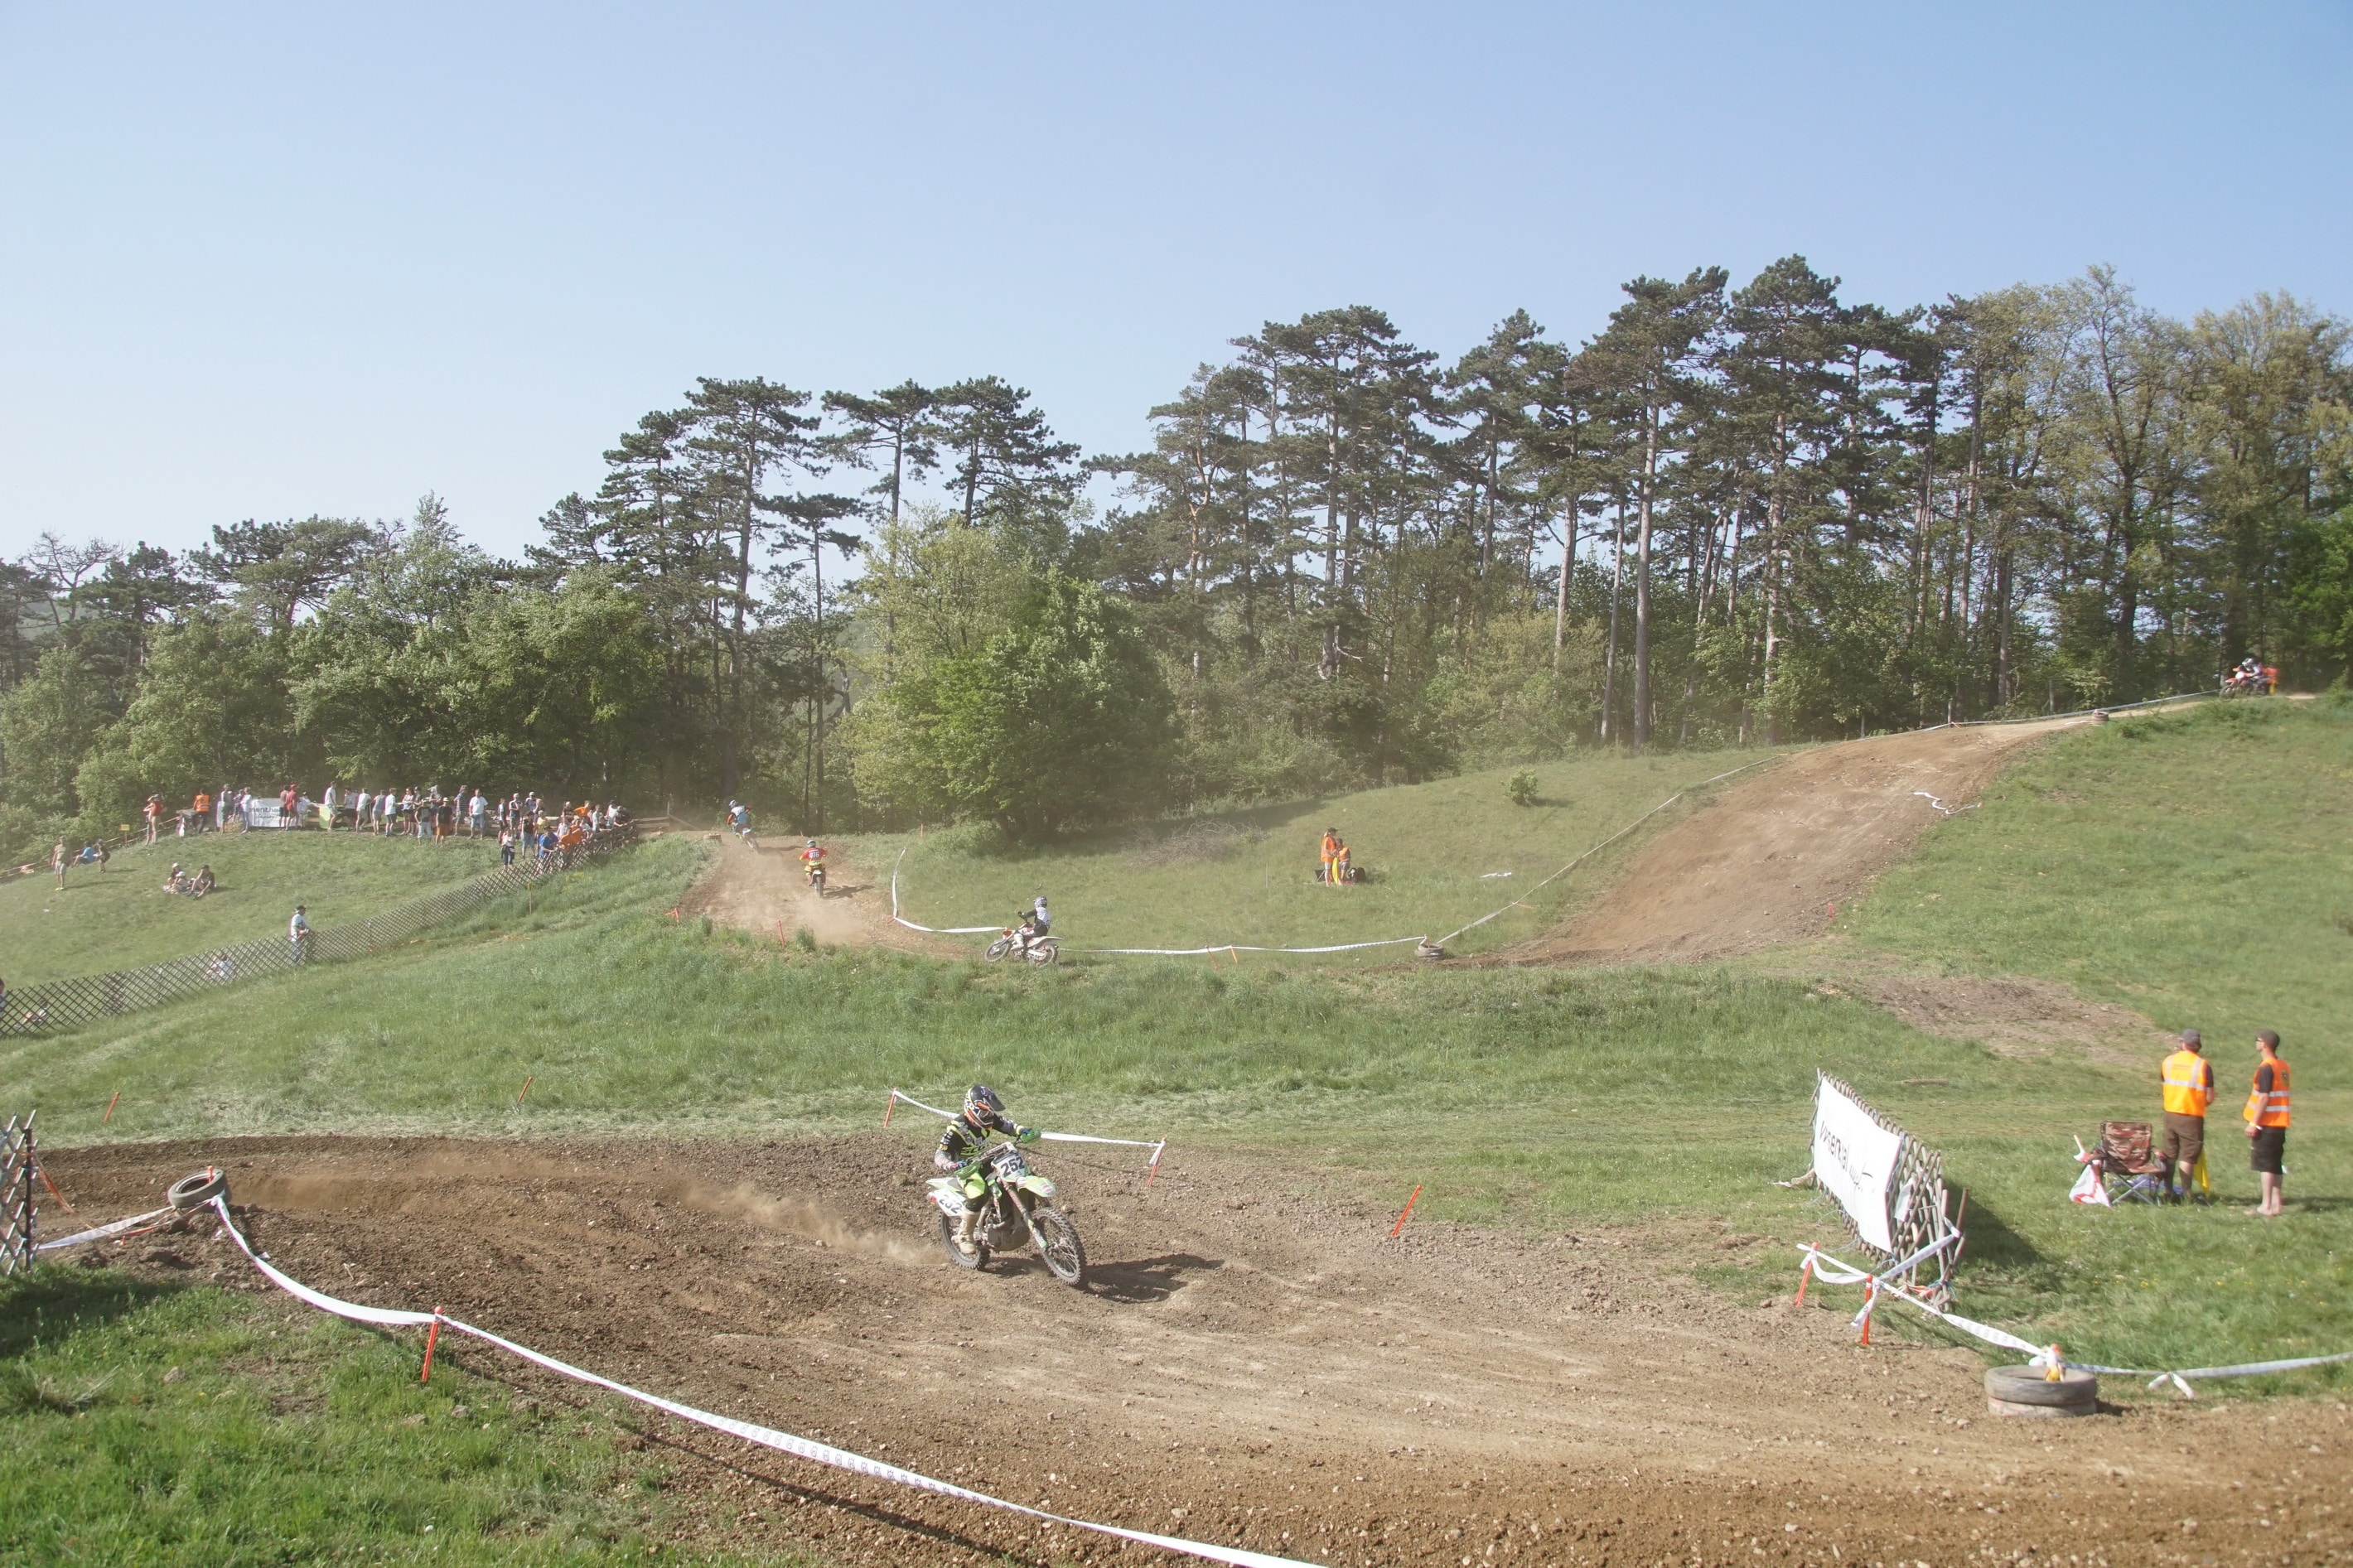 DSC 948_Moto Cross Sittendorf Teil1 am 29.04.2018